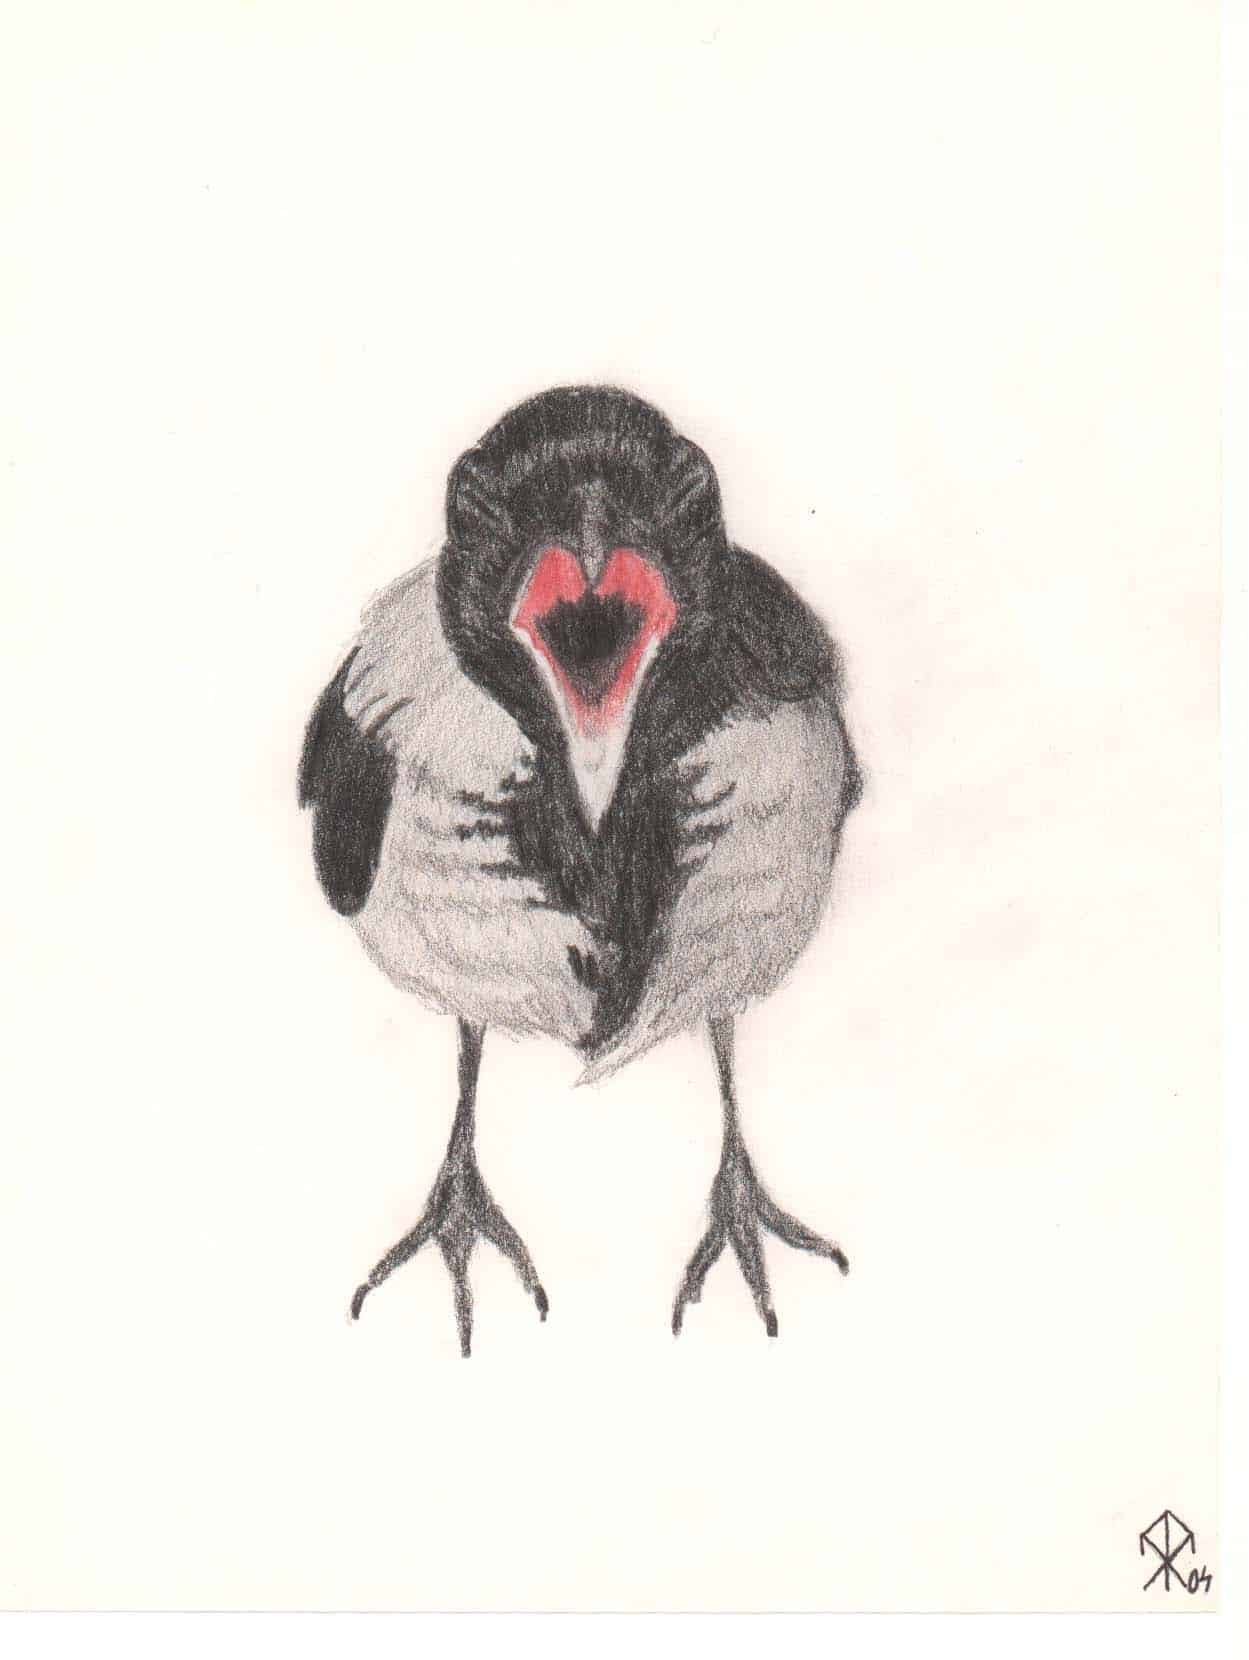 Re-drawing a 14-year-Old Drawing of an Angry Crow